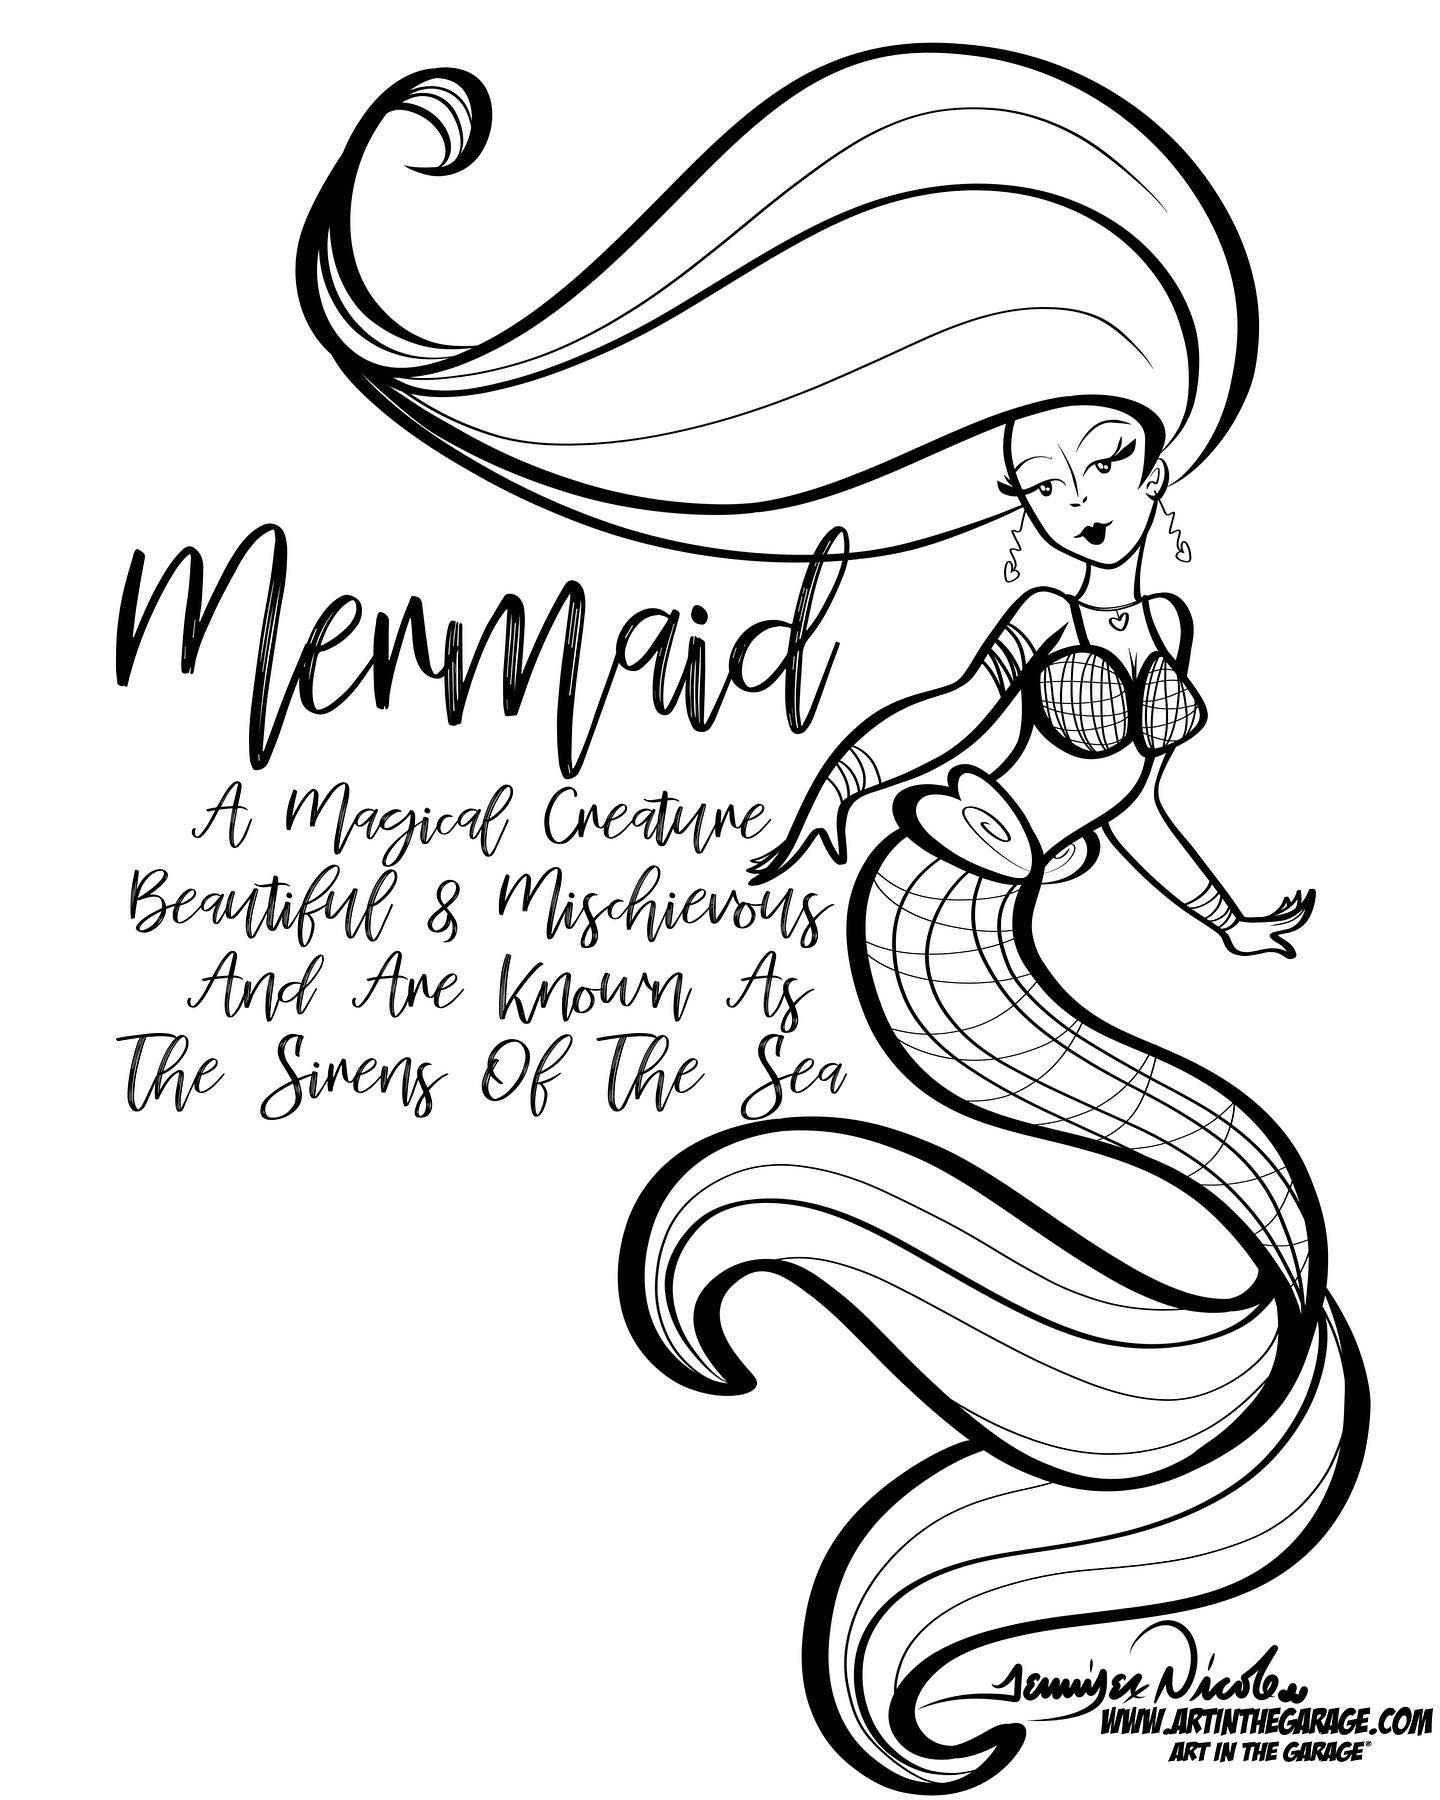 1-17-21 Mermaid